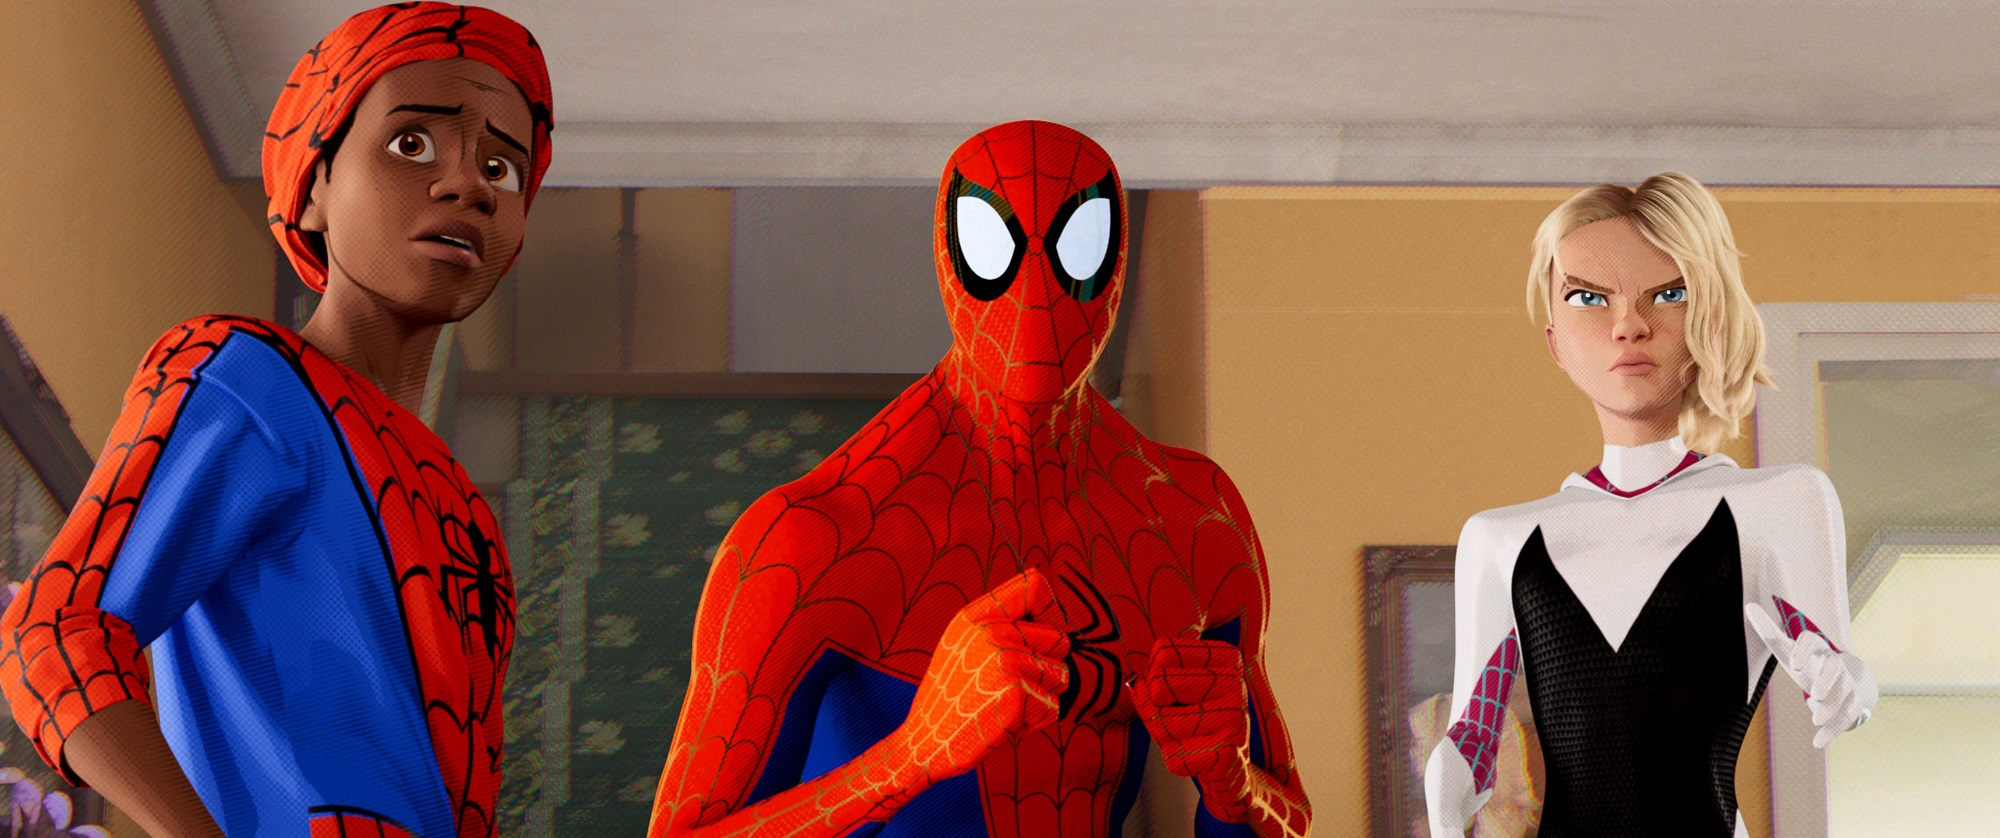 Art Colleges In New York >> A parents guide to 'Spider-Man: Into the Spider-Verse ...